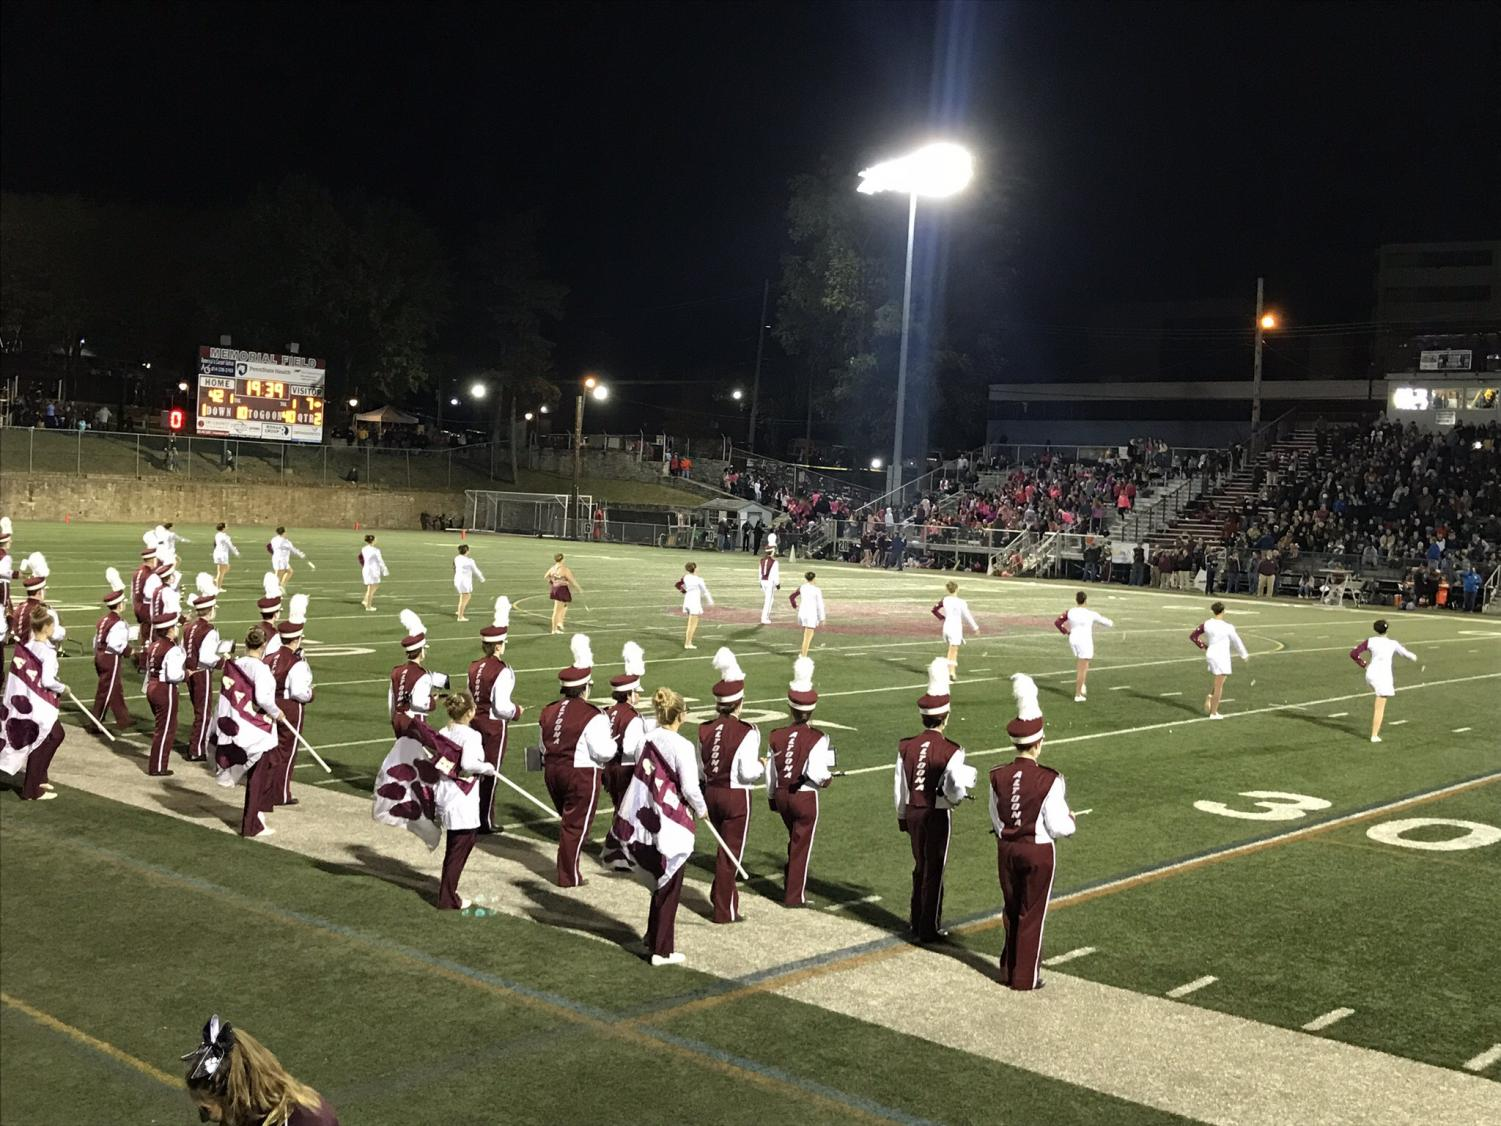 Lets go lions! The Altoona High School marching band starts their half-time performance by marching out onto the field. AAHS attended their last game at State College on Oct. 19 during this year.